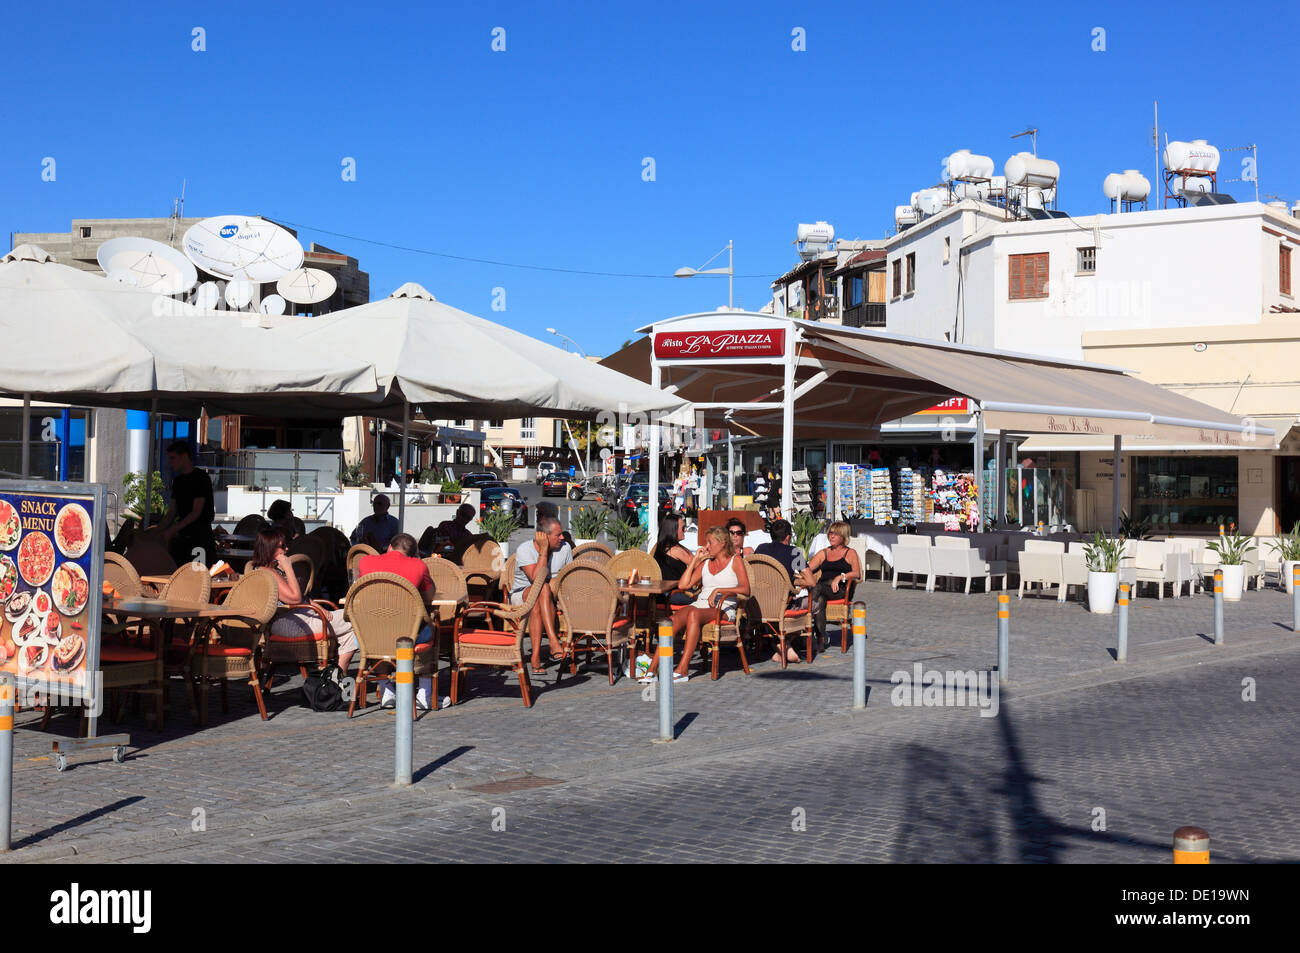 Cyprus, Pafos town, Gazibaf, Restaurants and cafes on the promenade - Stock Image